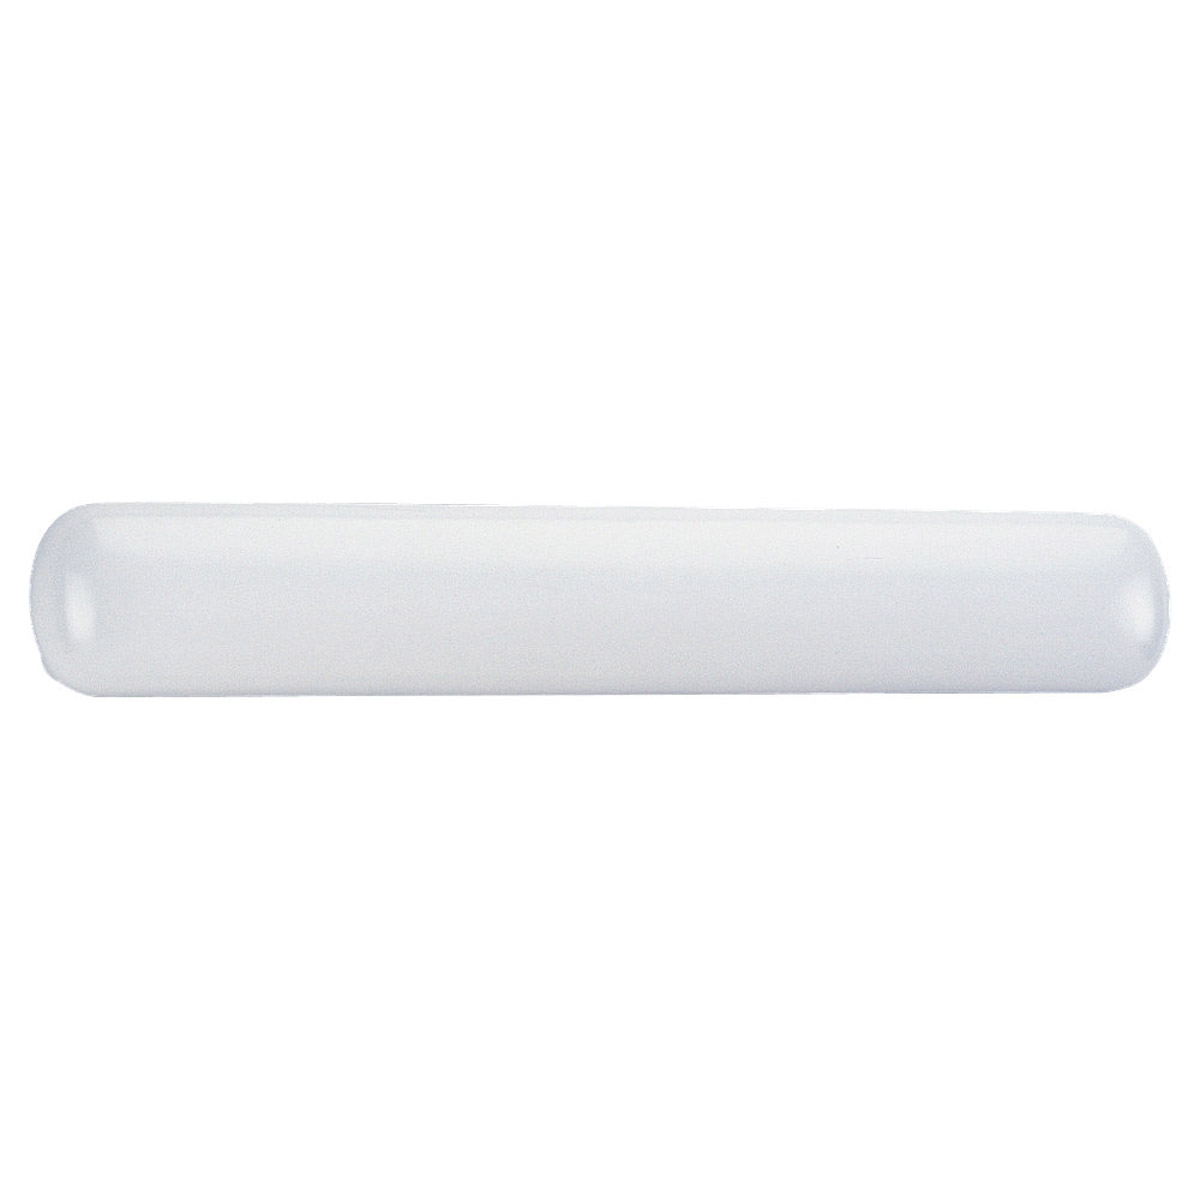 Sea Gull Lighting Pillow Lens Fluorescent 2 Light Wall Sconce in White Plastic 4989LE-68